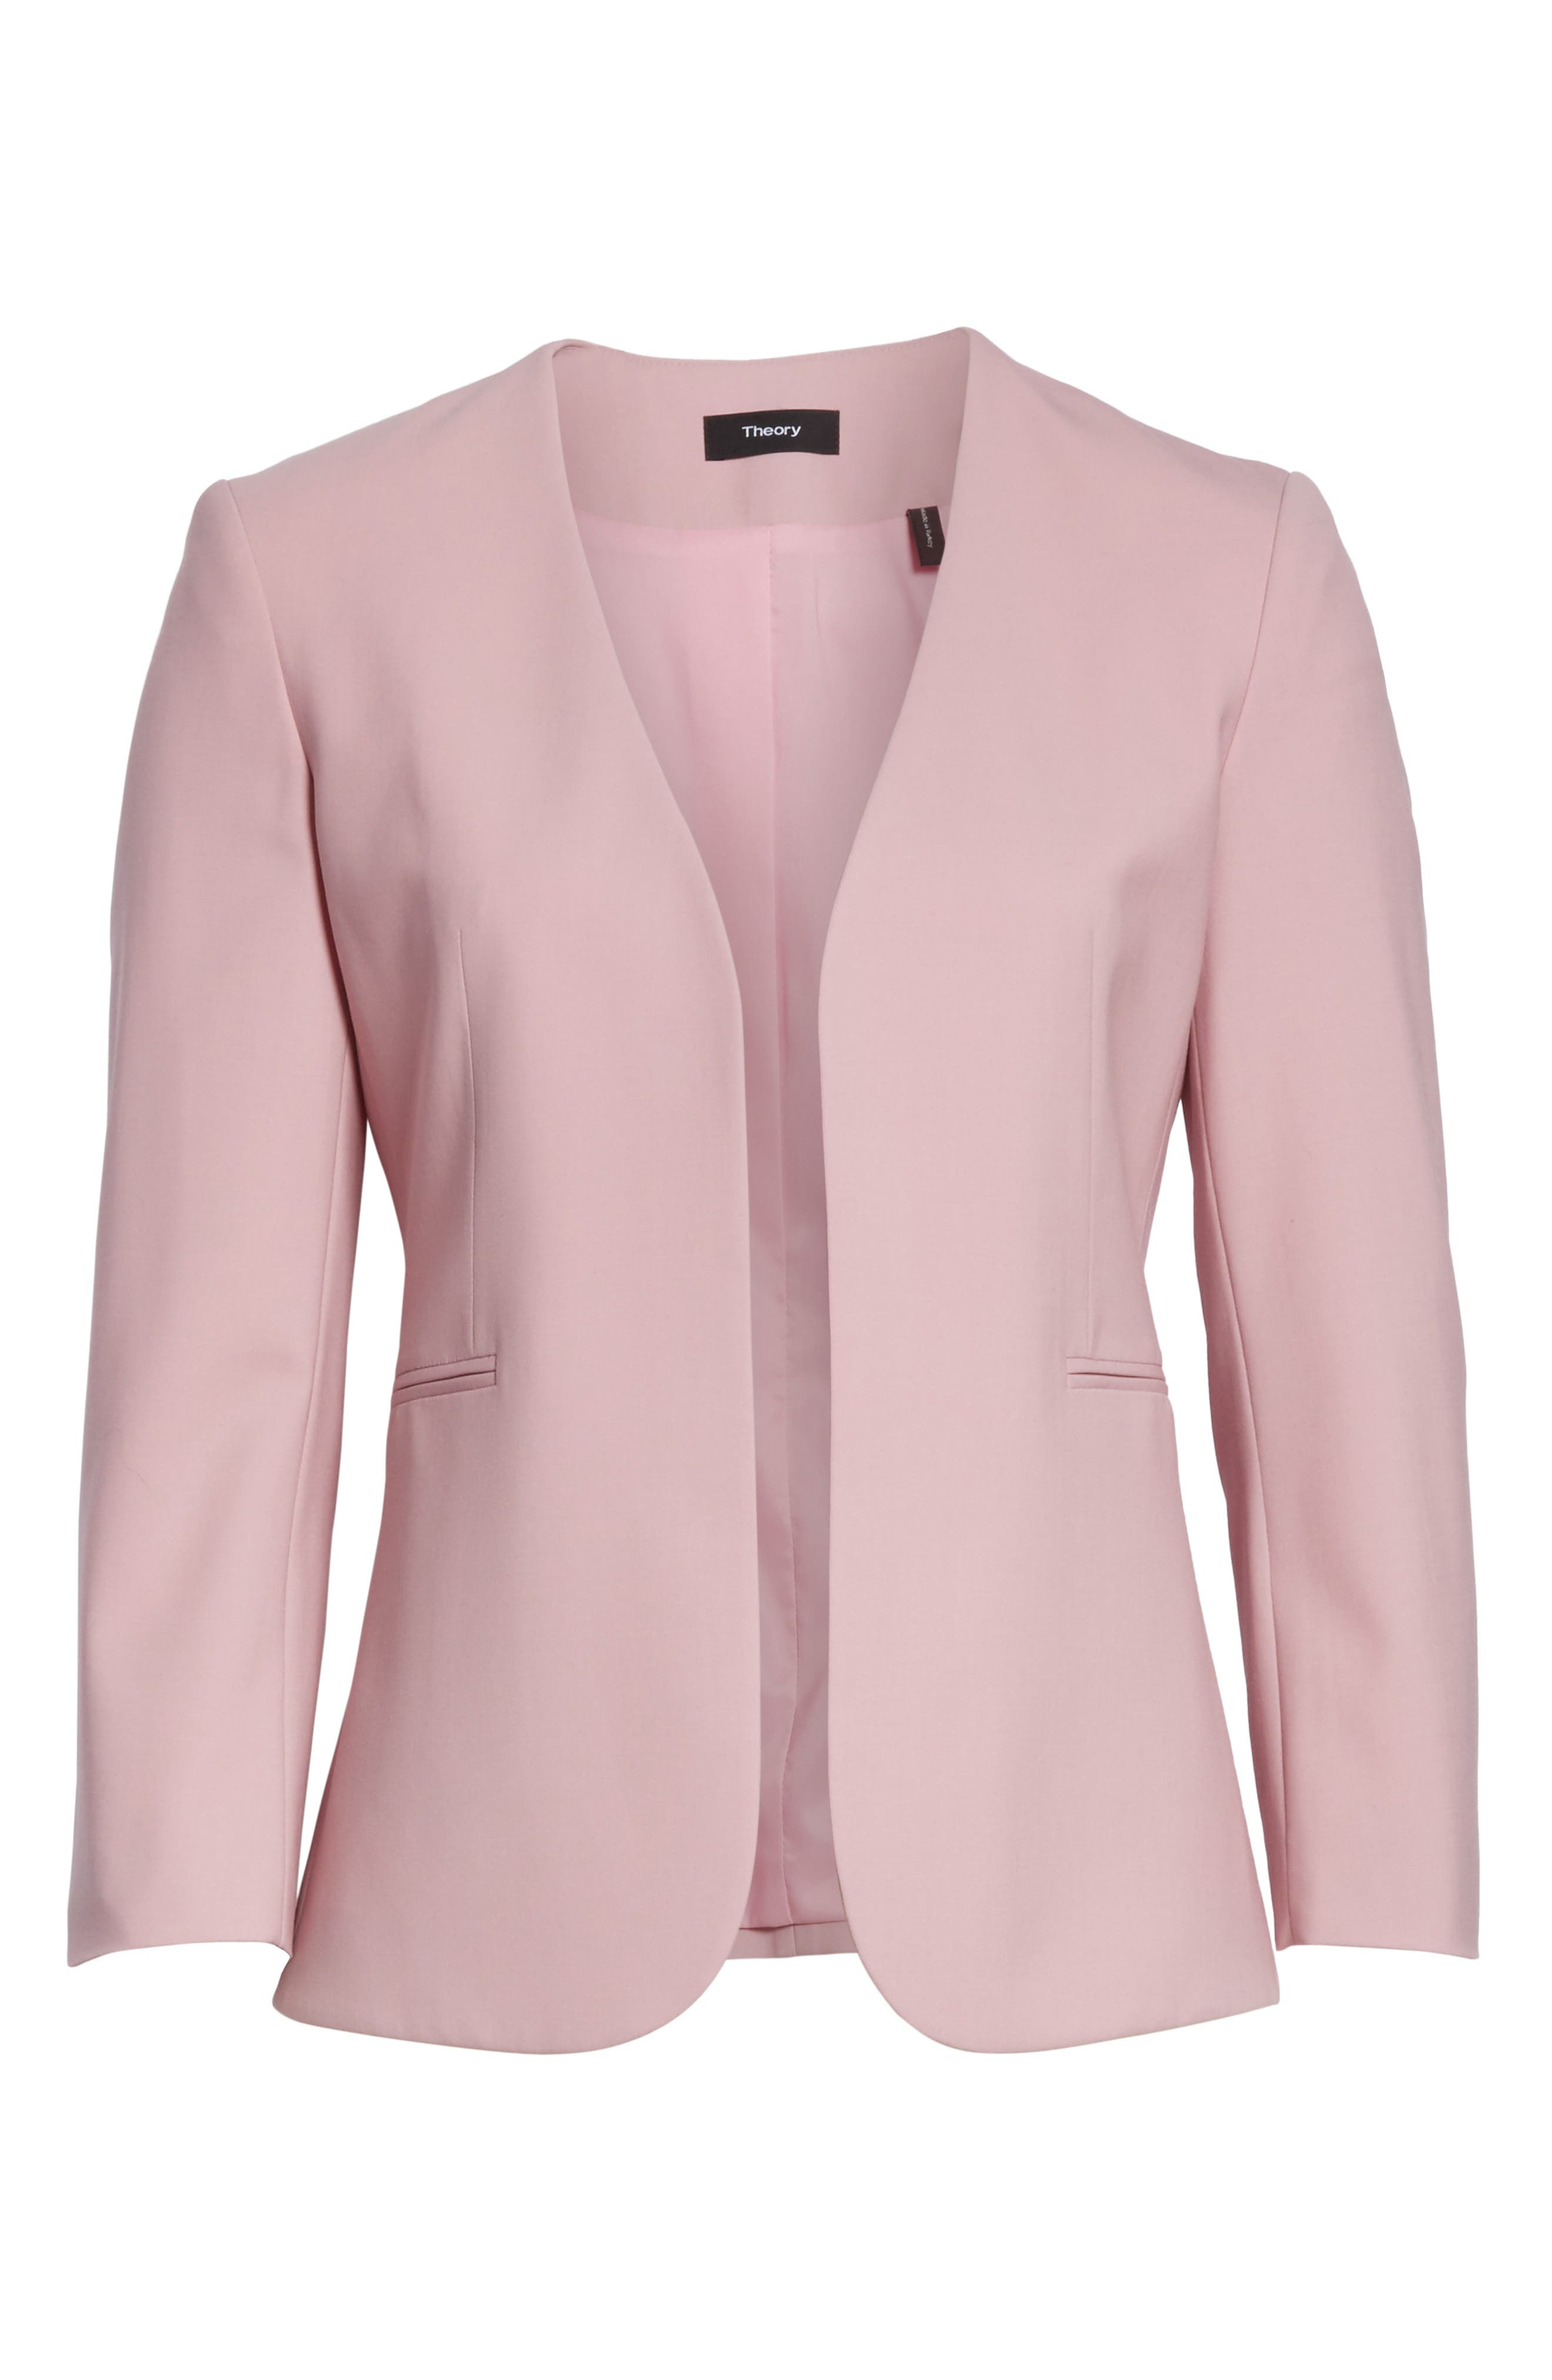 Lindrayia B Good Wool Suit Jacket,                             Alternate thumbnail 7, color,                             Berry Tint